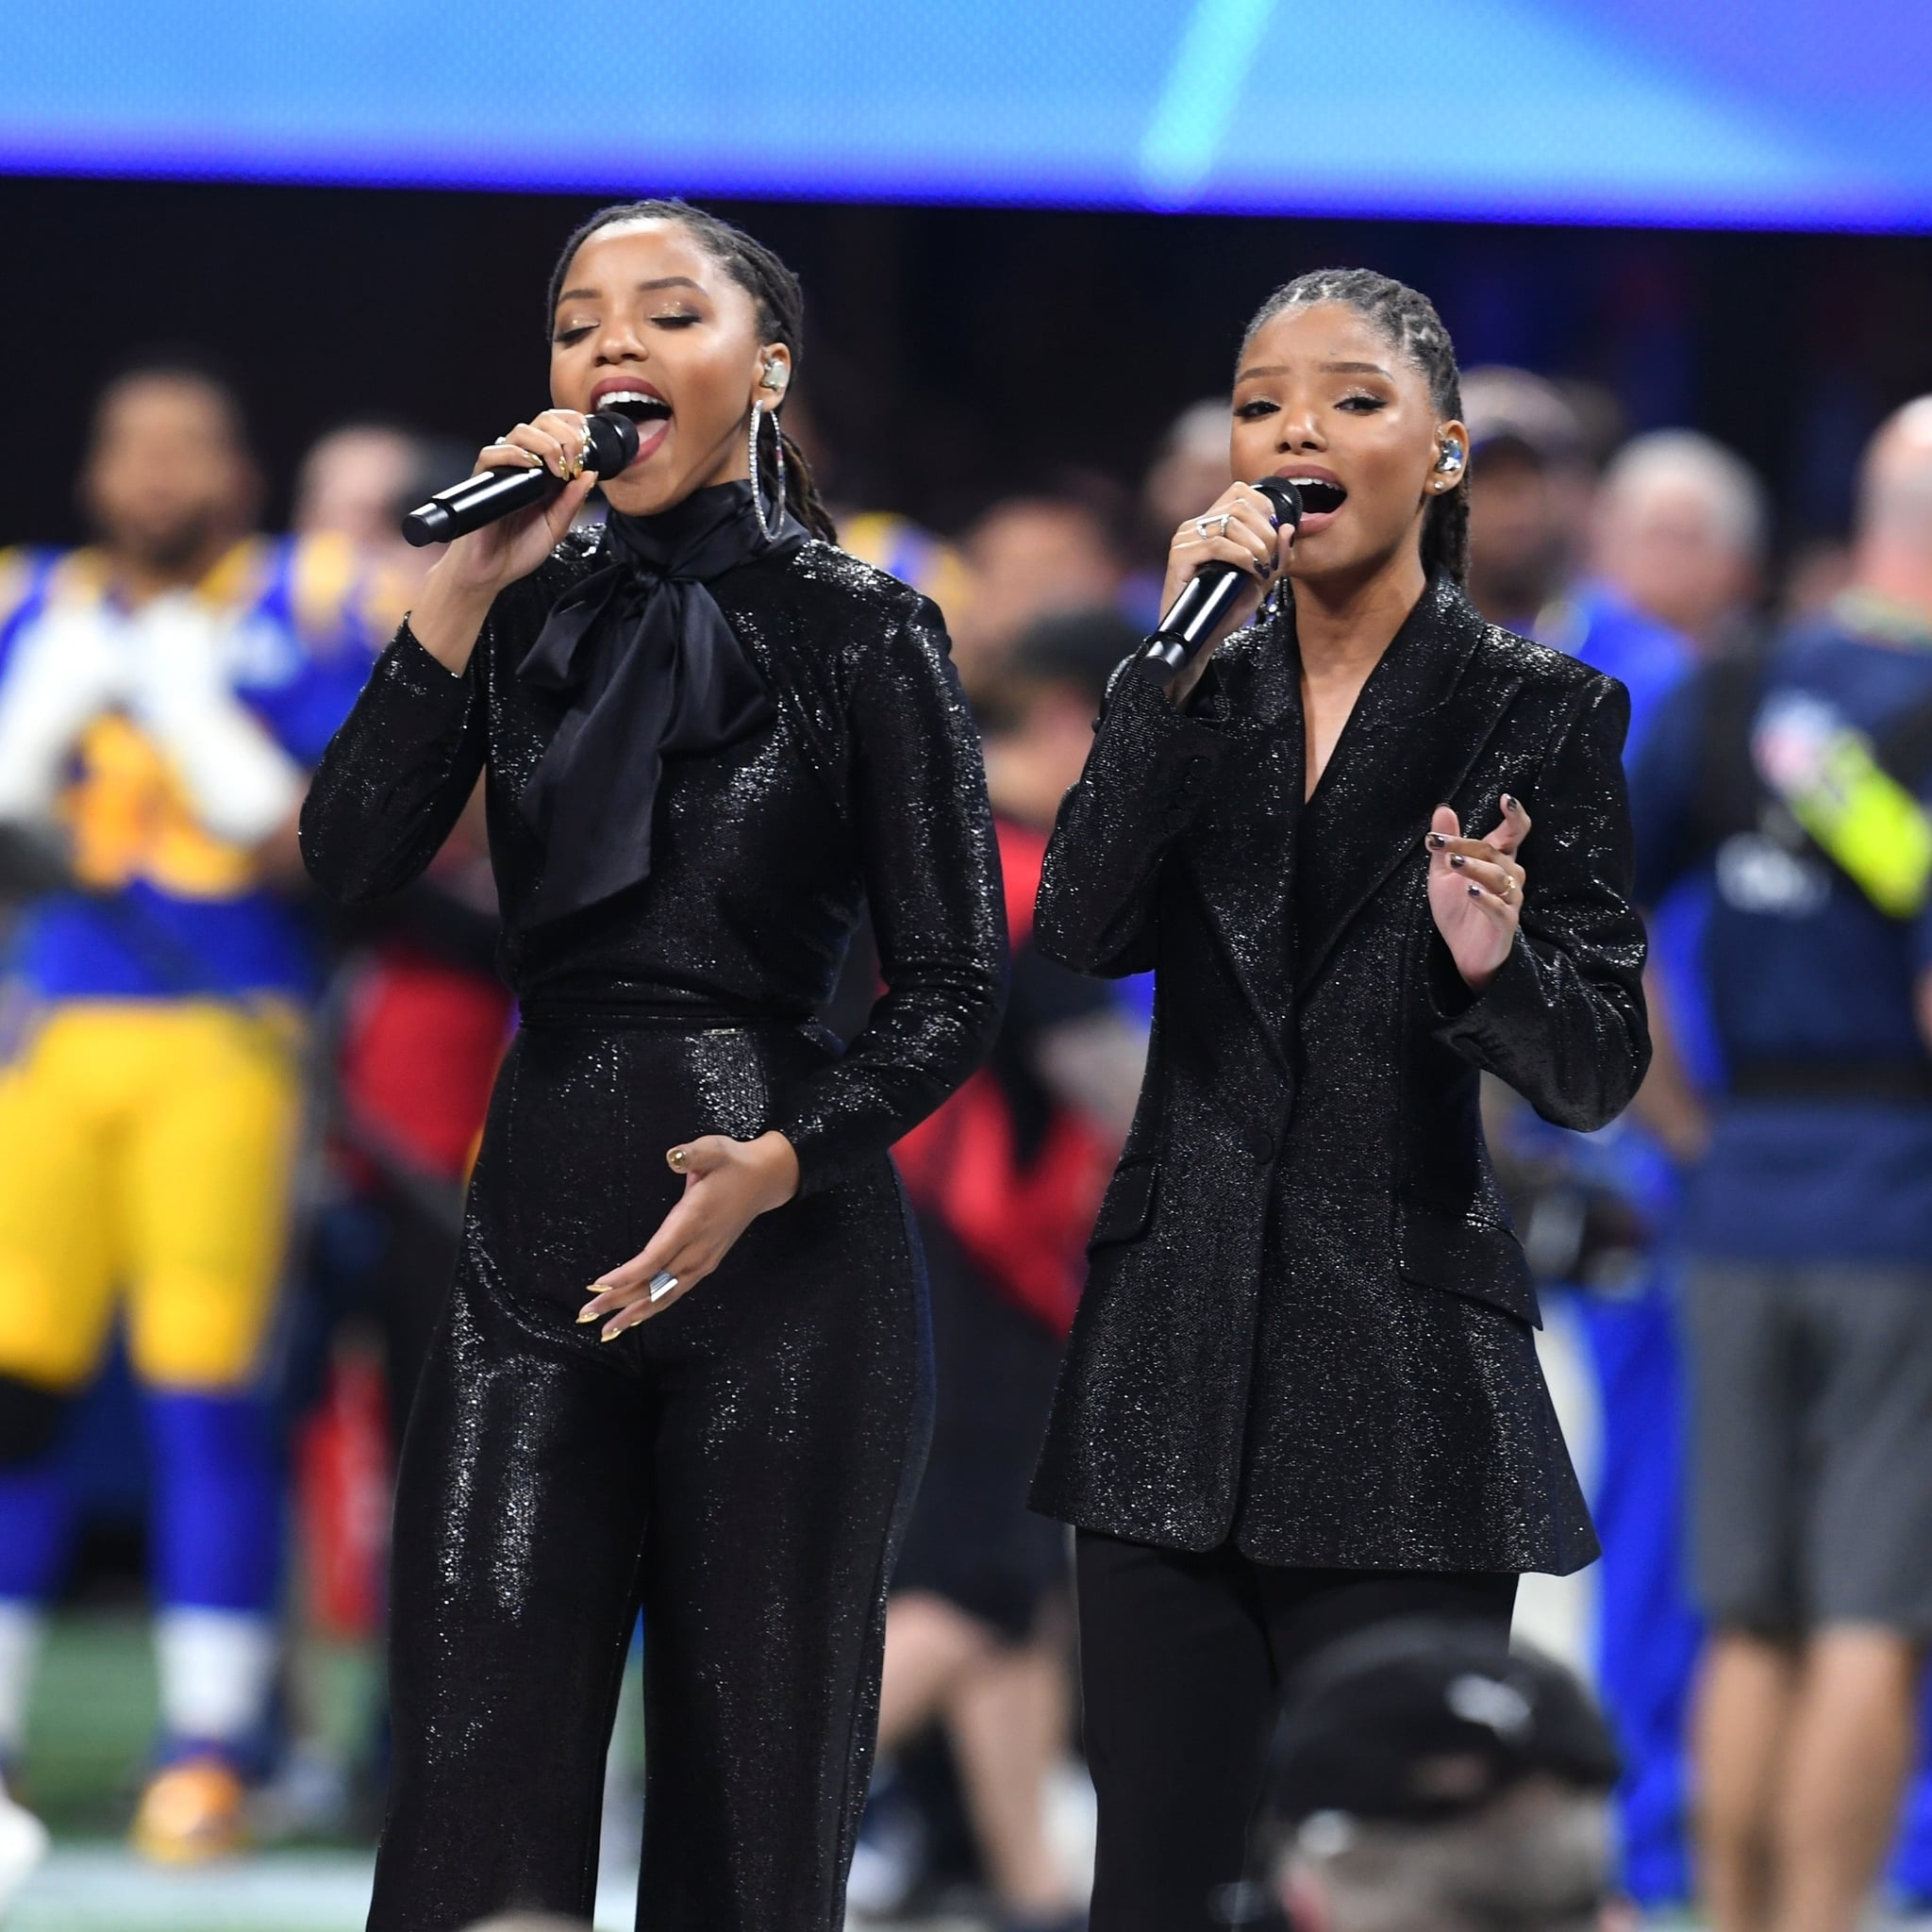 Movies, Tv & Music | Chloe X Halle Delivered A Stunning regarding America The Beautiful Super Bowl 2019